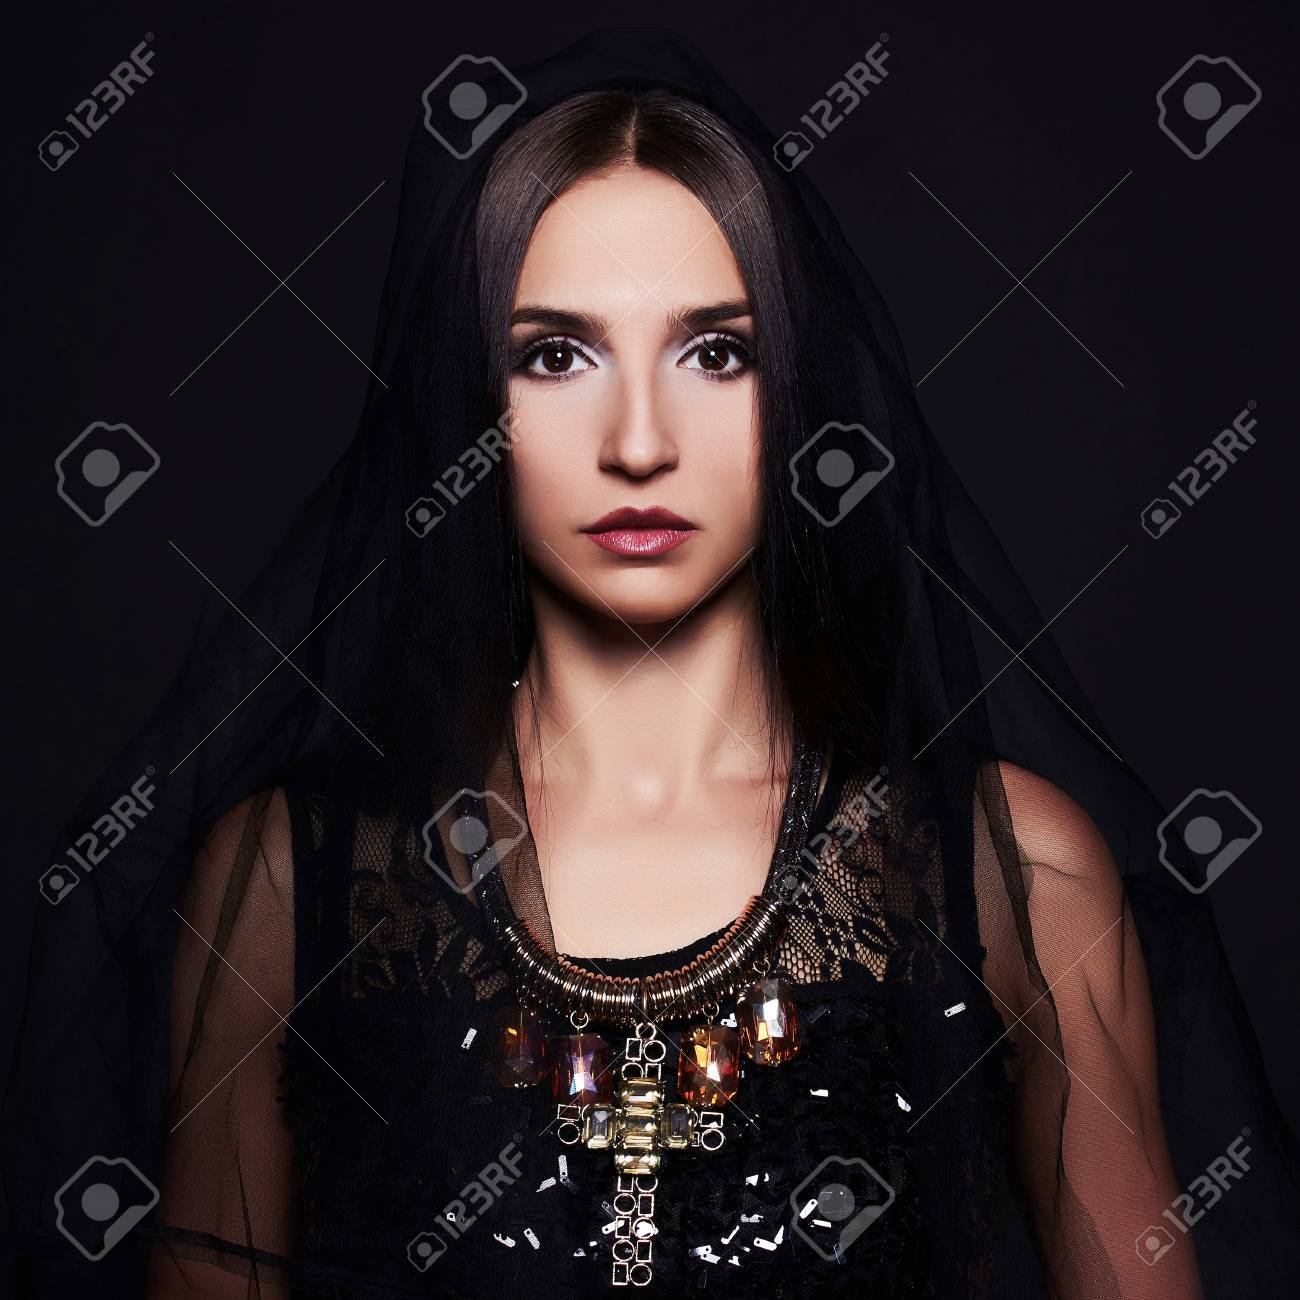 Beautiful woman with black veil portrait studio shot brunette model girl gold jewelry